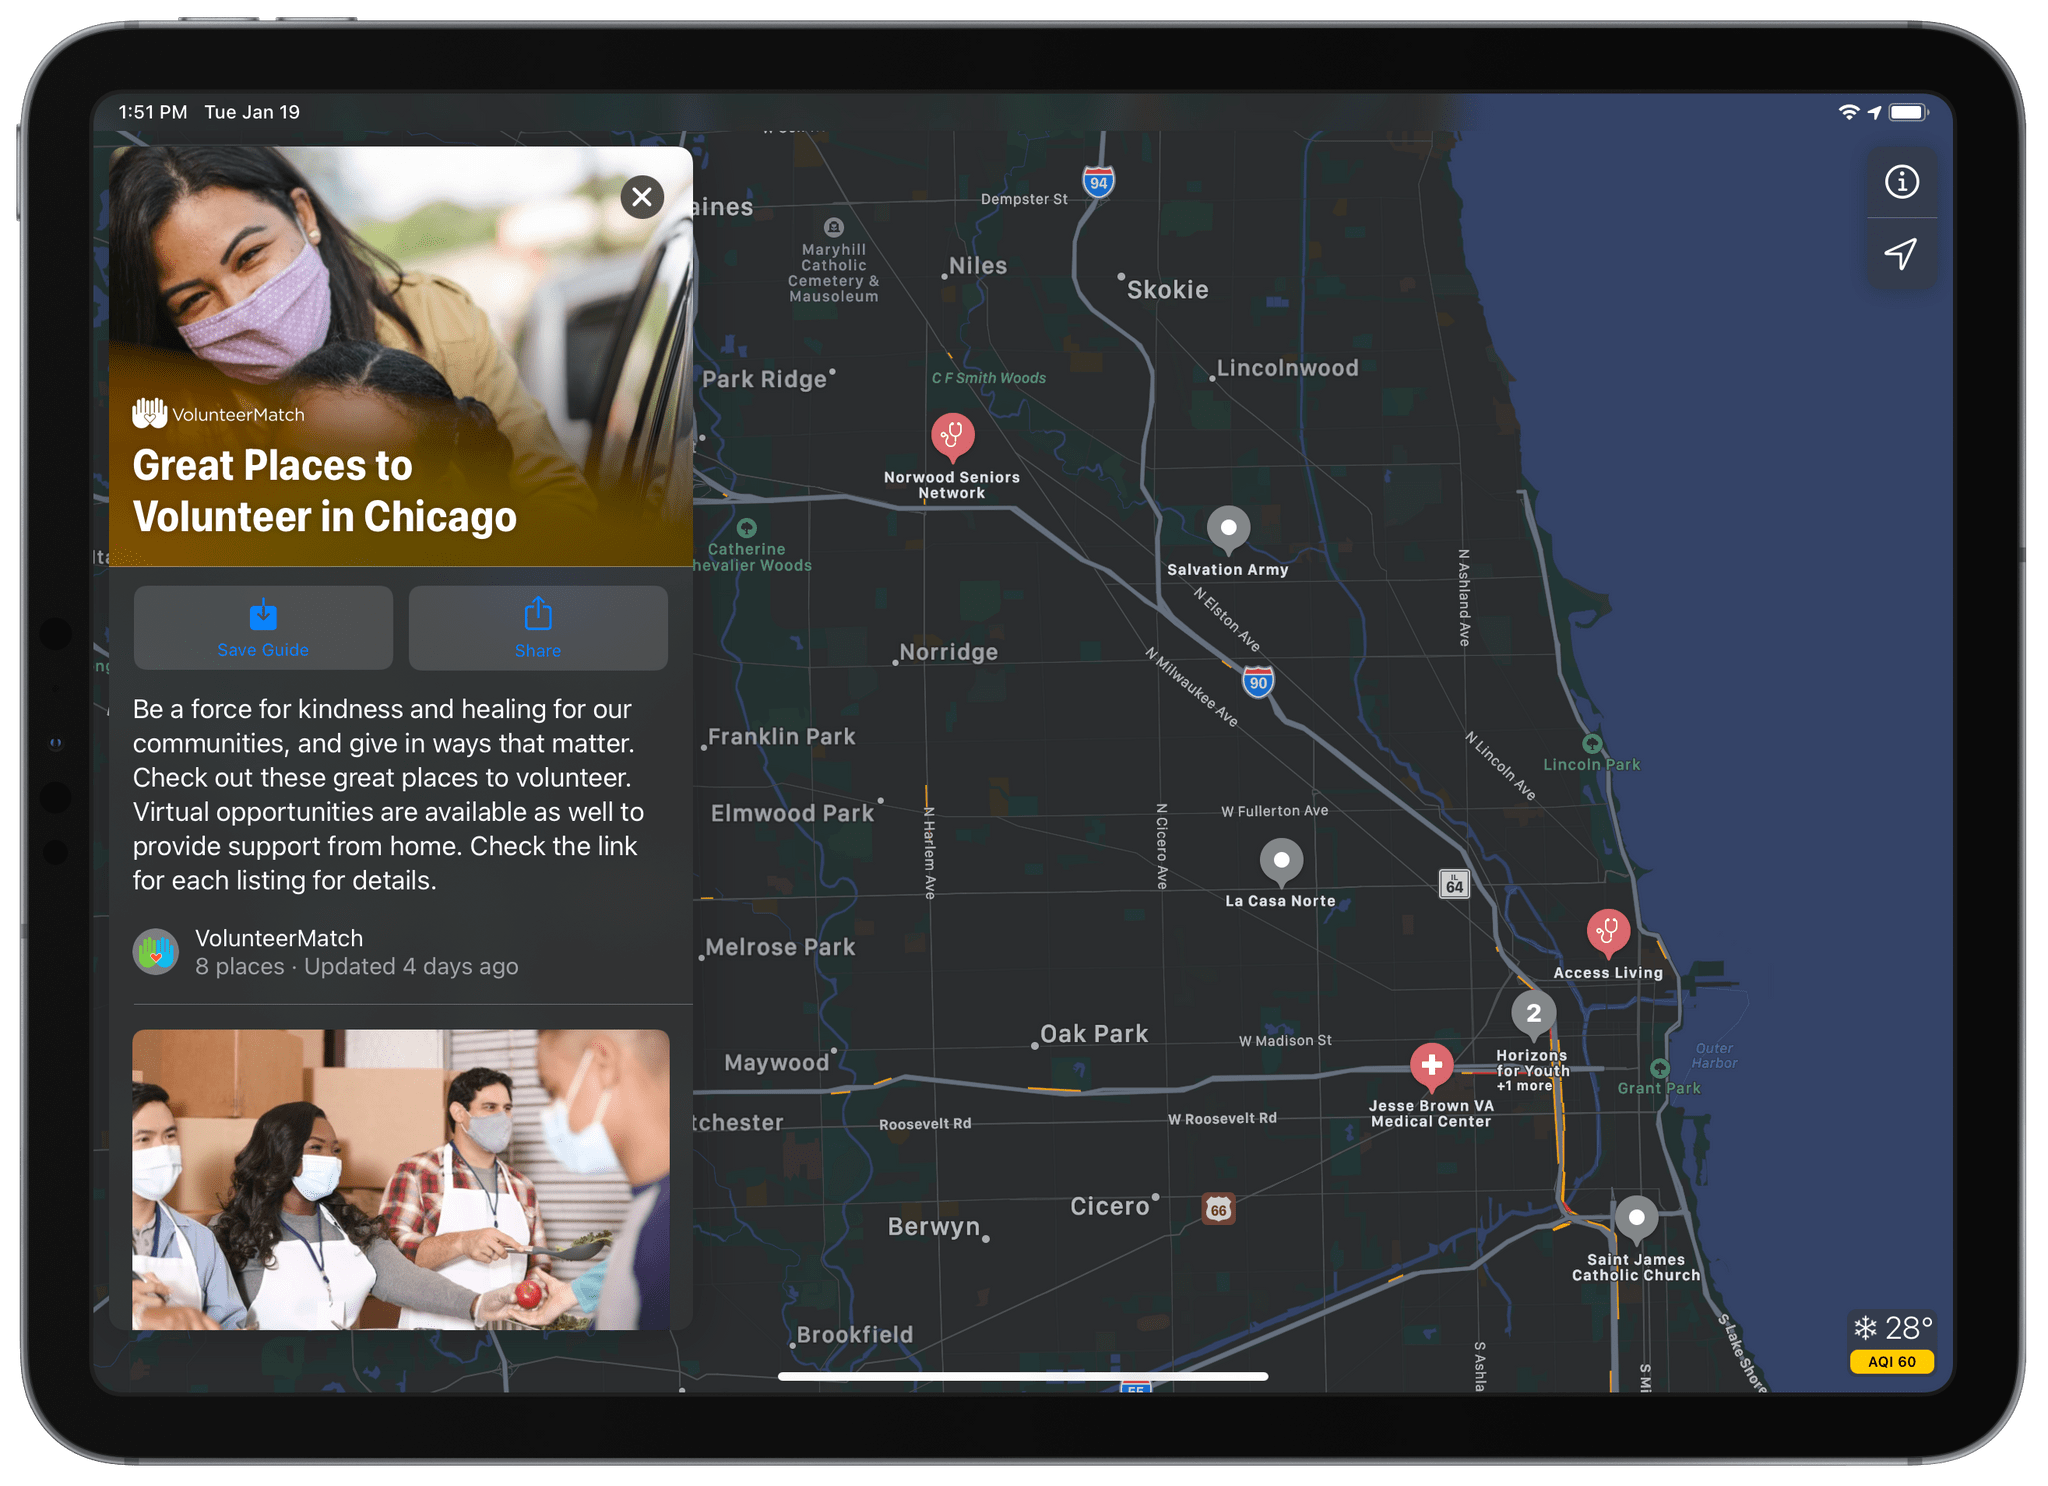 Apple Partners with VolunteerMatch to Feature Local Volunteer Opportunities in Apple Maps